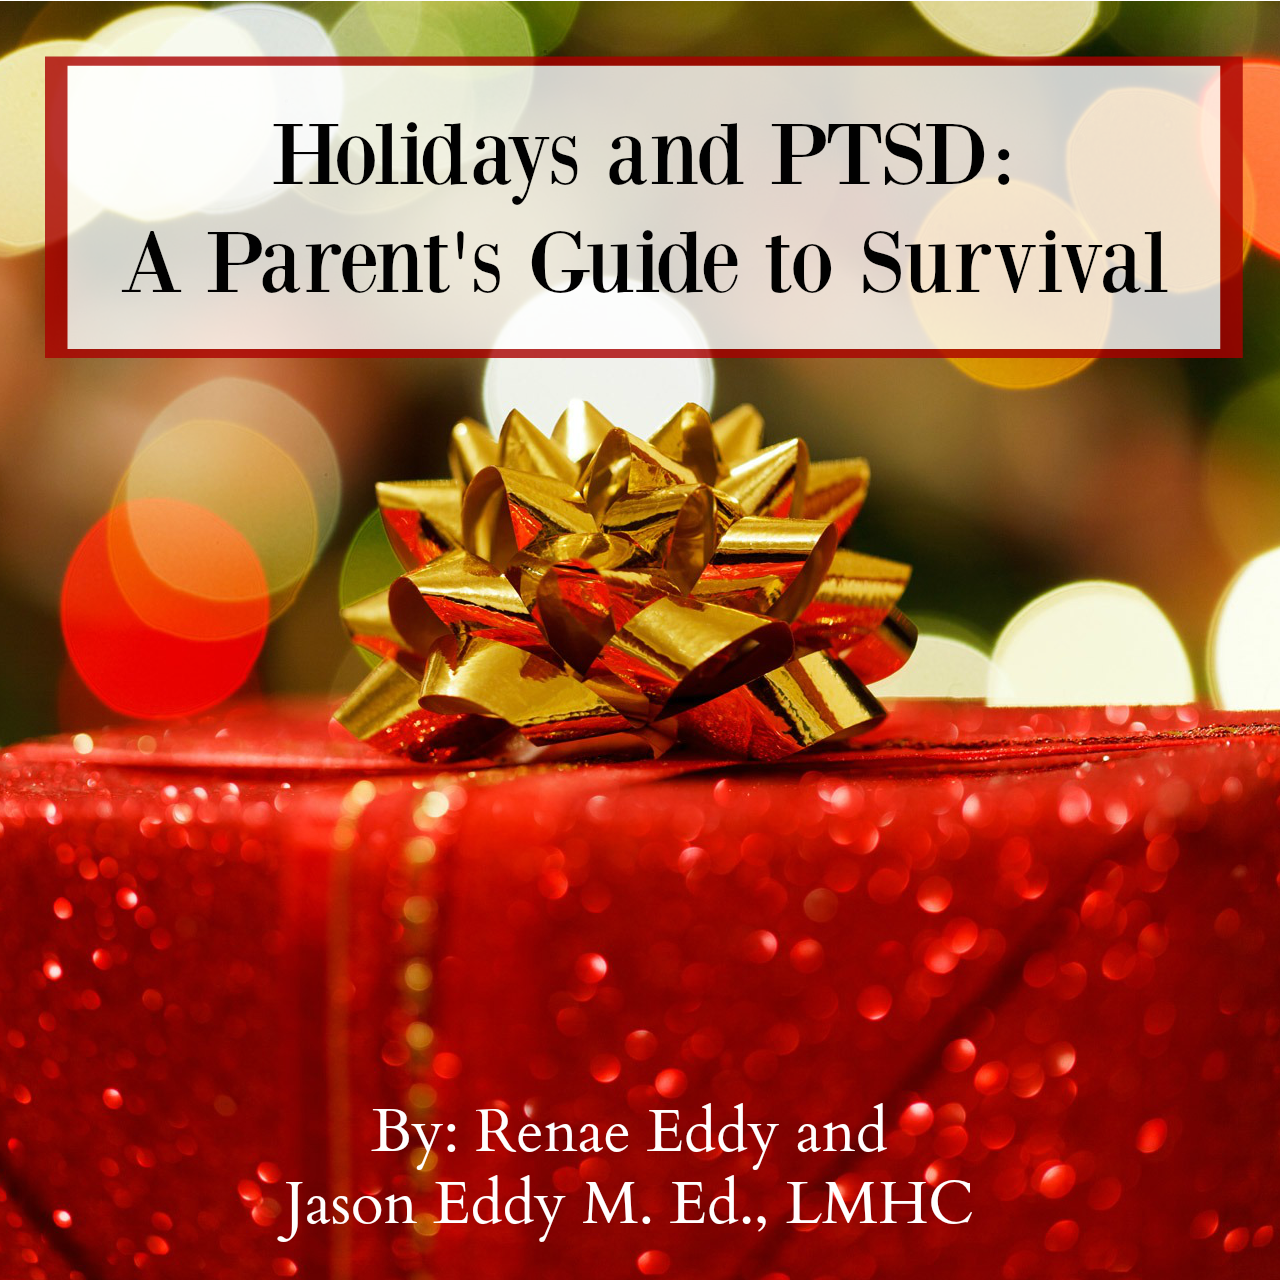 Holidays and PTSD:  A Parent's Guide to Survival